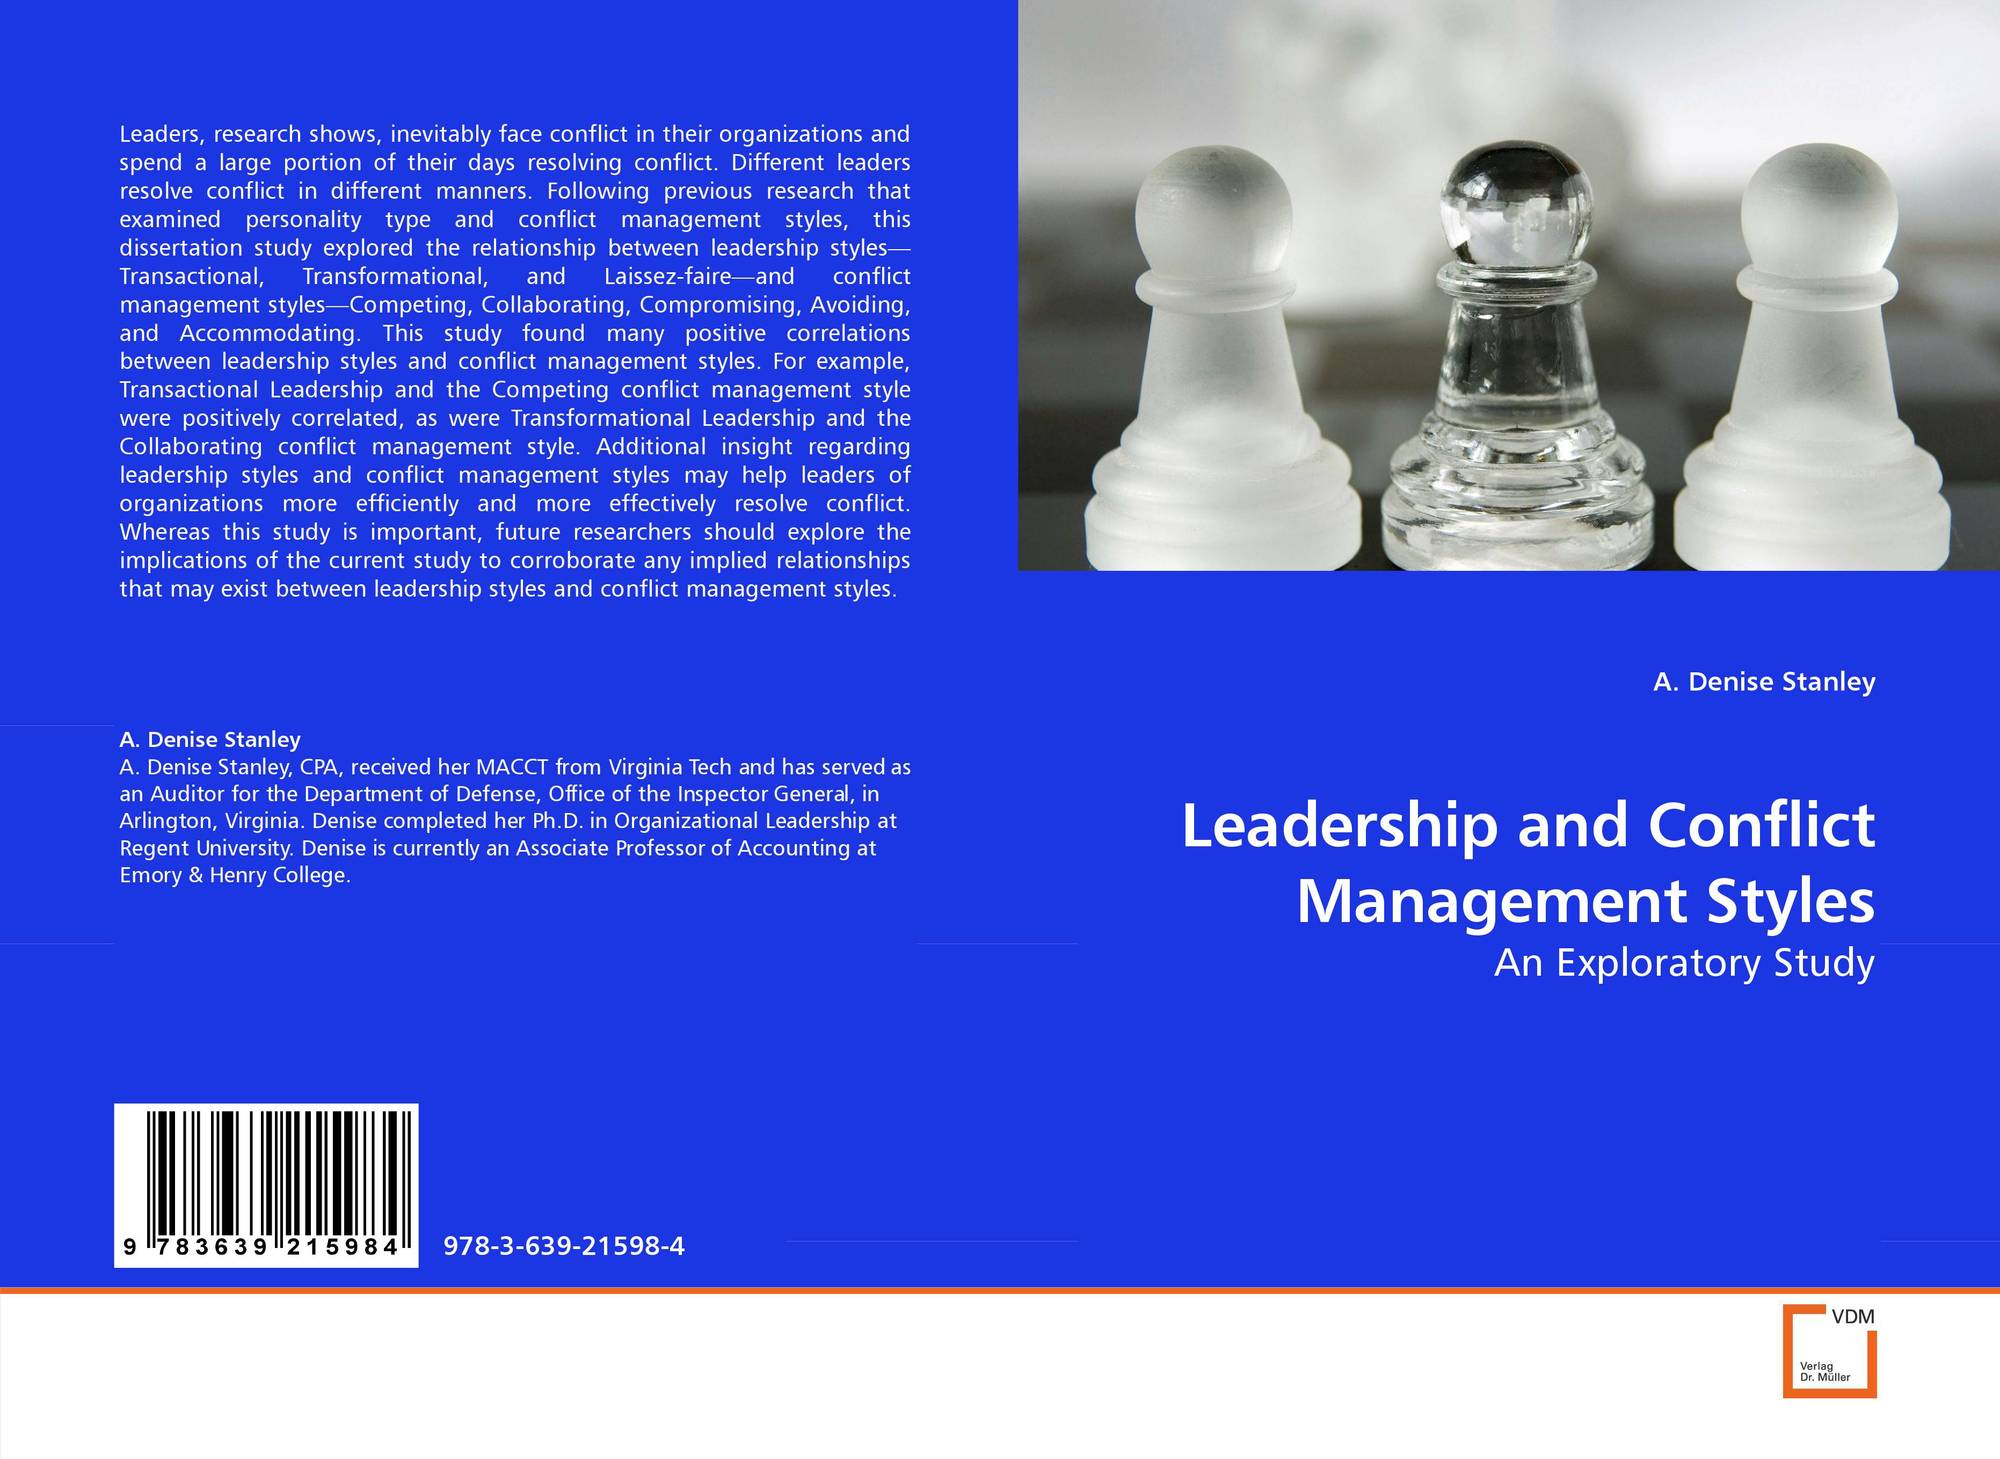 four leaders and their management styels